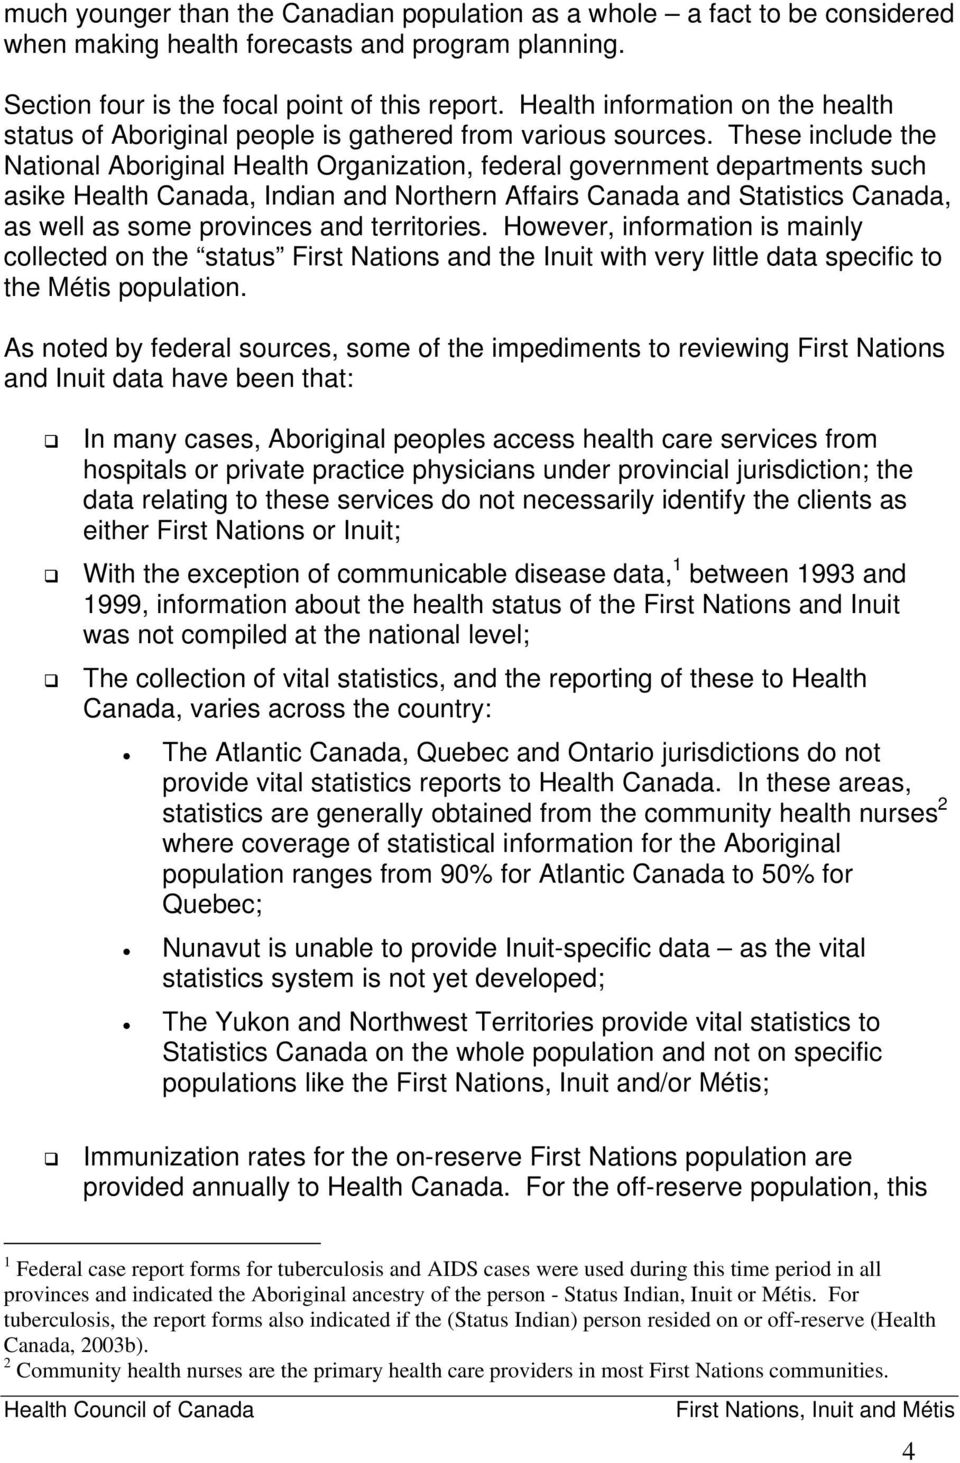 These include the National Aboriginal Health Organization, federal government departments such asike Health Canada, Indian and Northern Affairs Canada and Statistics Canada, as well as some provinces